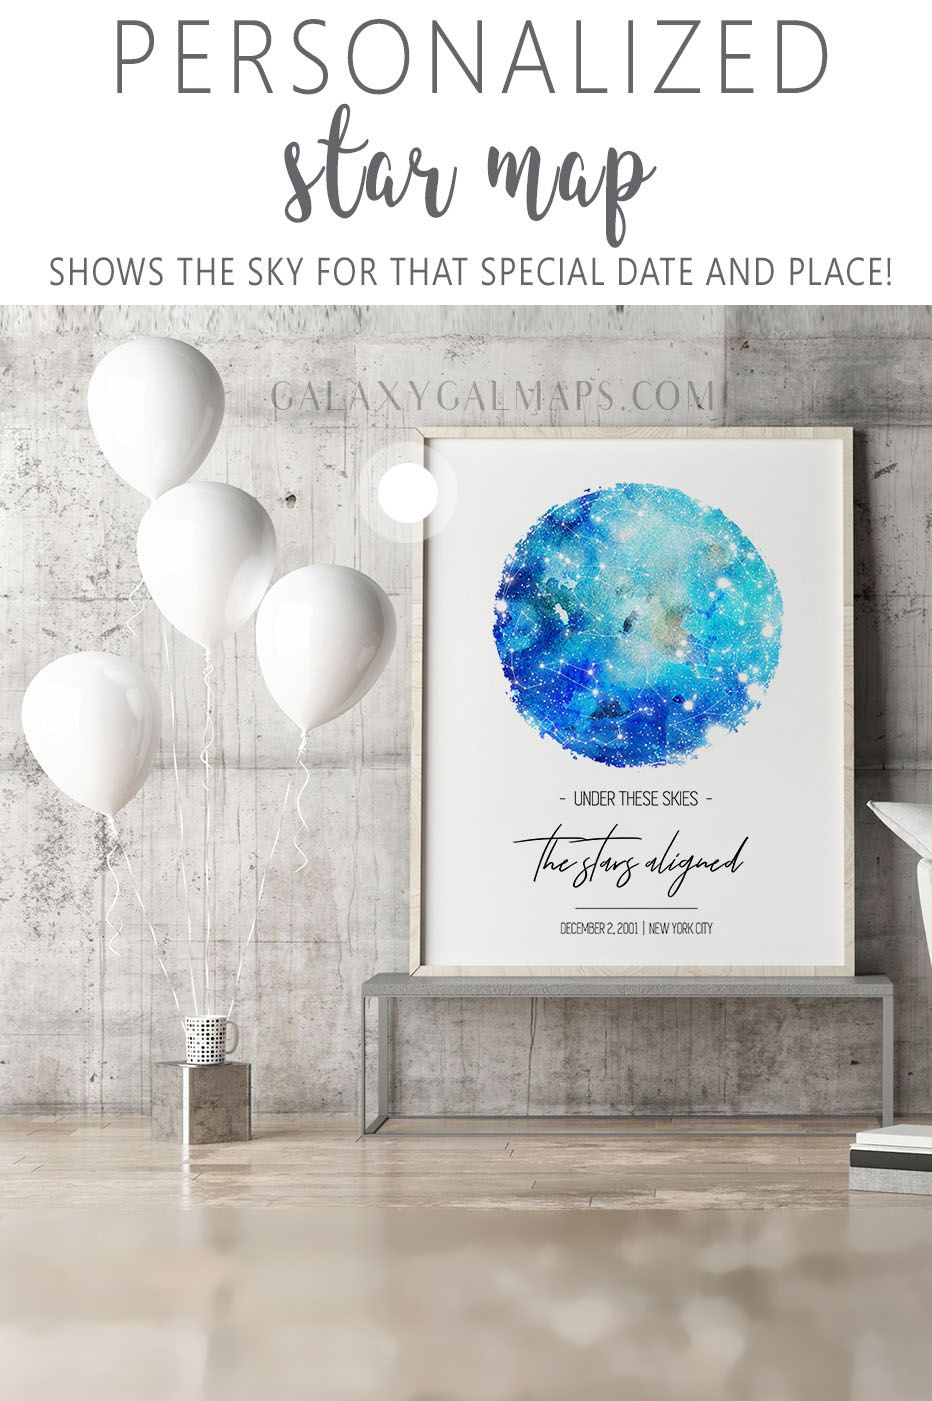 Get Sky Map by Date friendship gift, Star Map Two, State